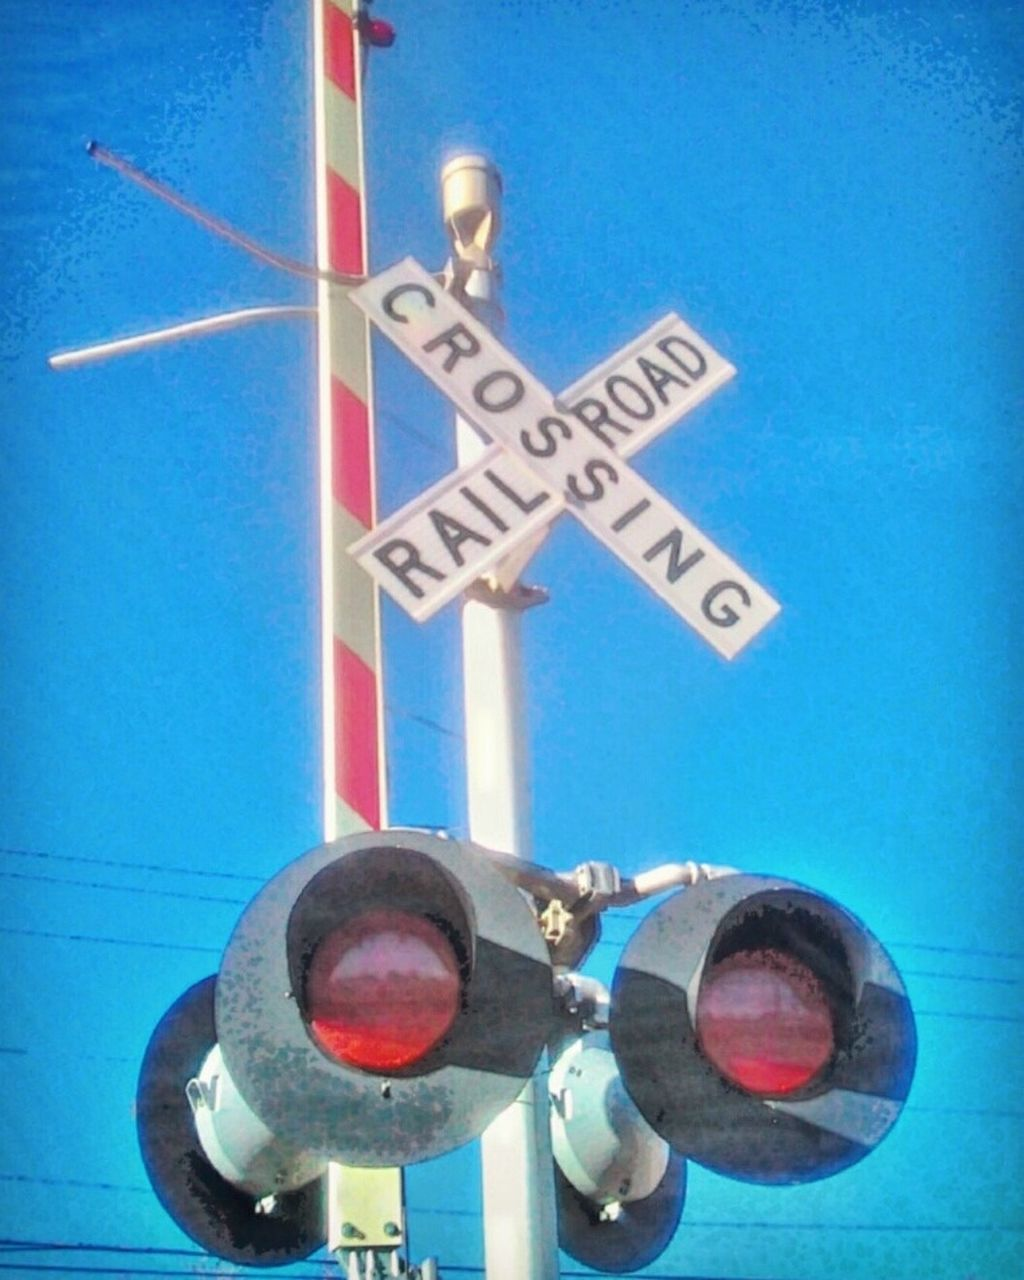 guidance, transportation, text, no people, blue, railway signal, day, low angle view, communication, outdoors, close-up, road sign, sky